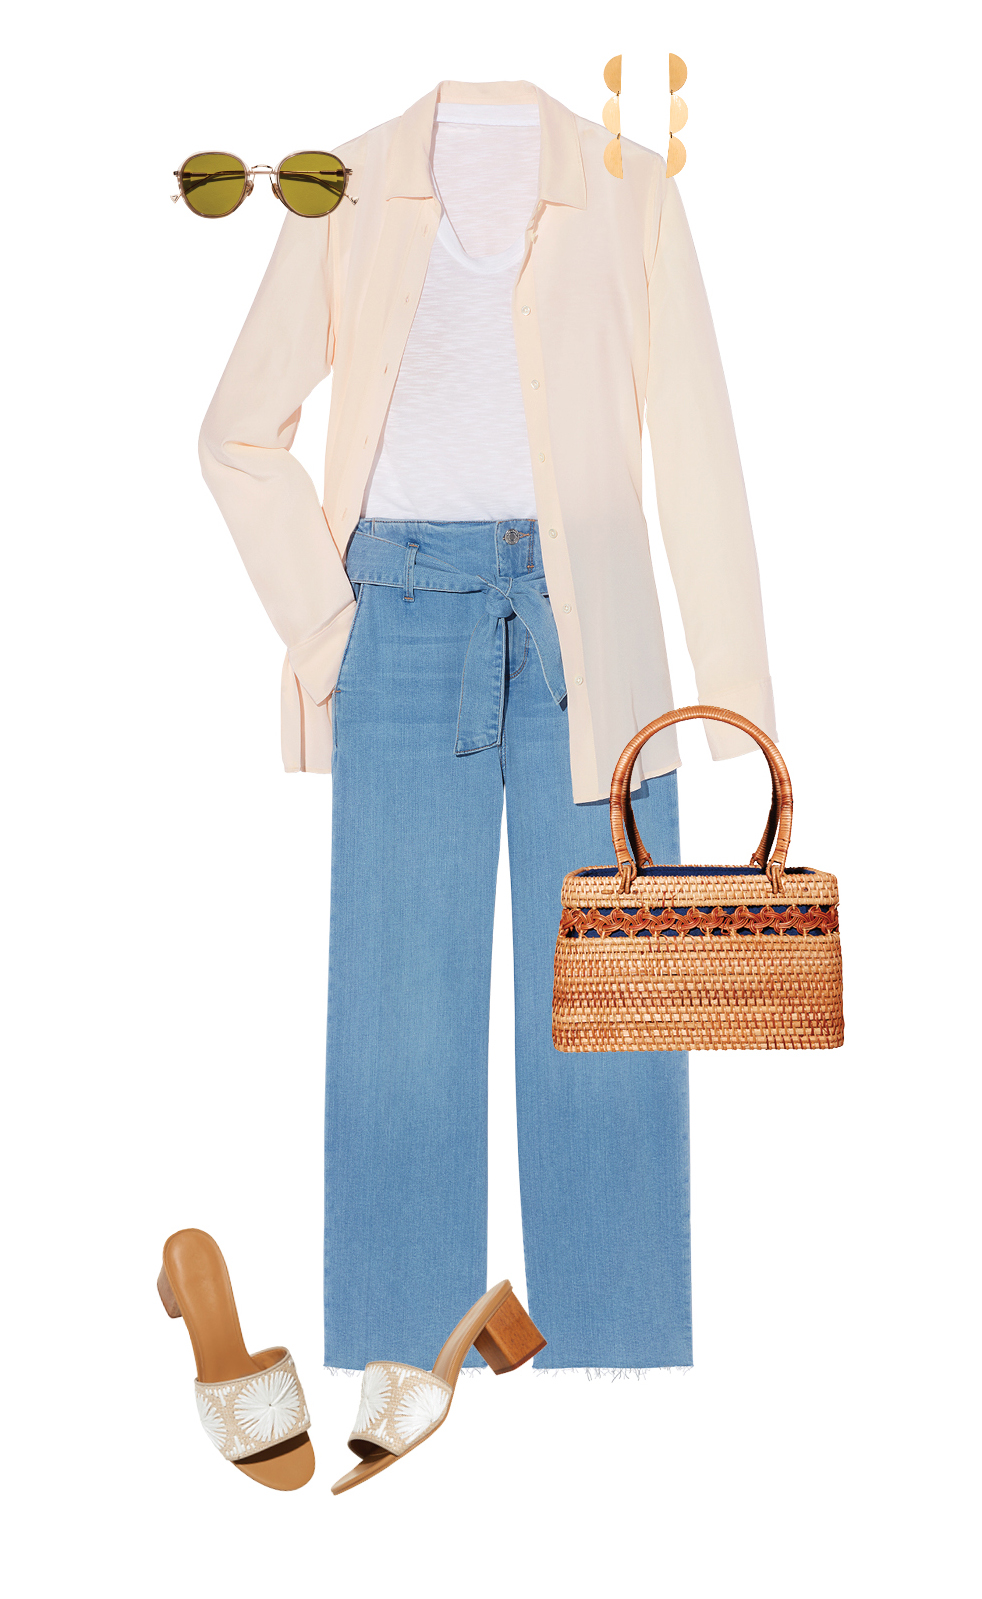 Silk Blouse, Jeans, and Mules